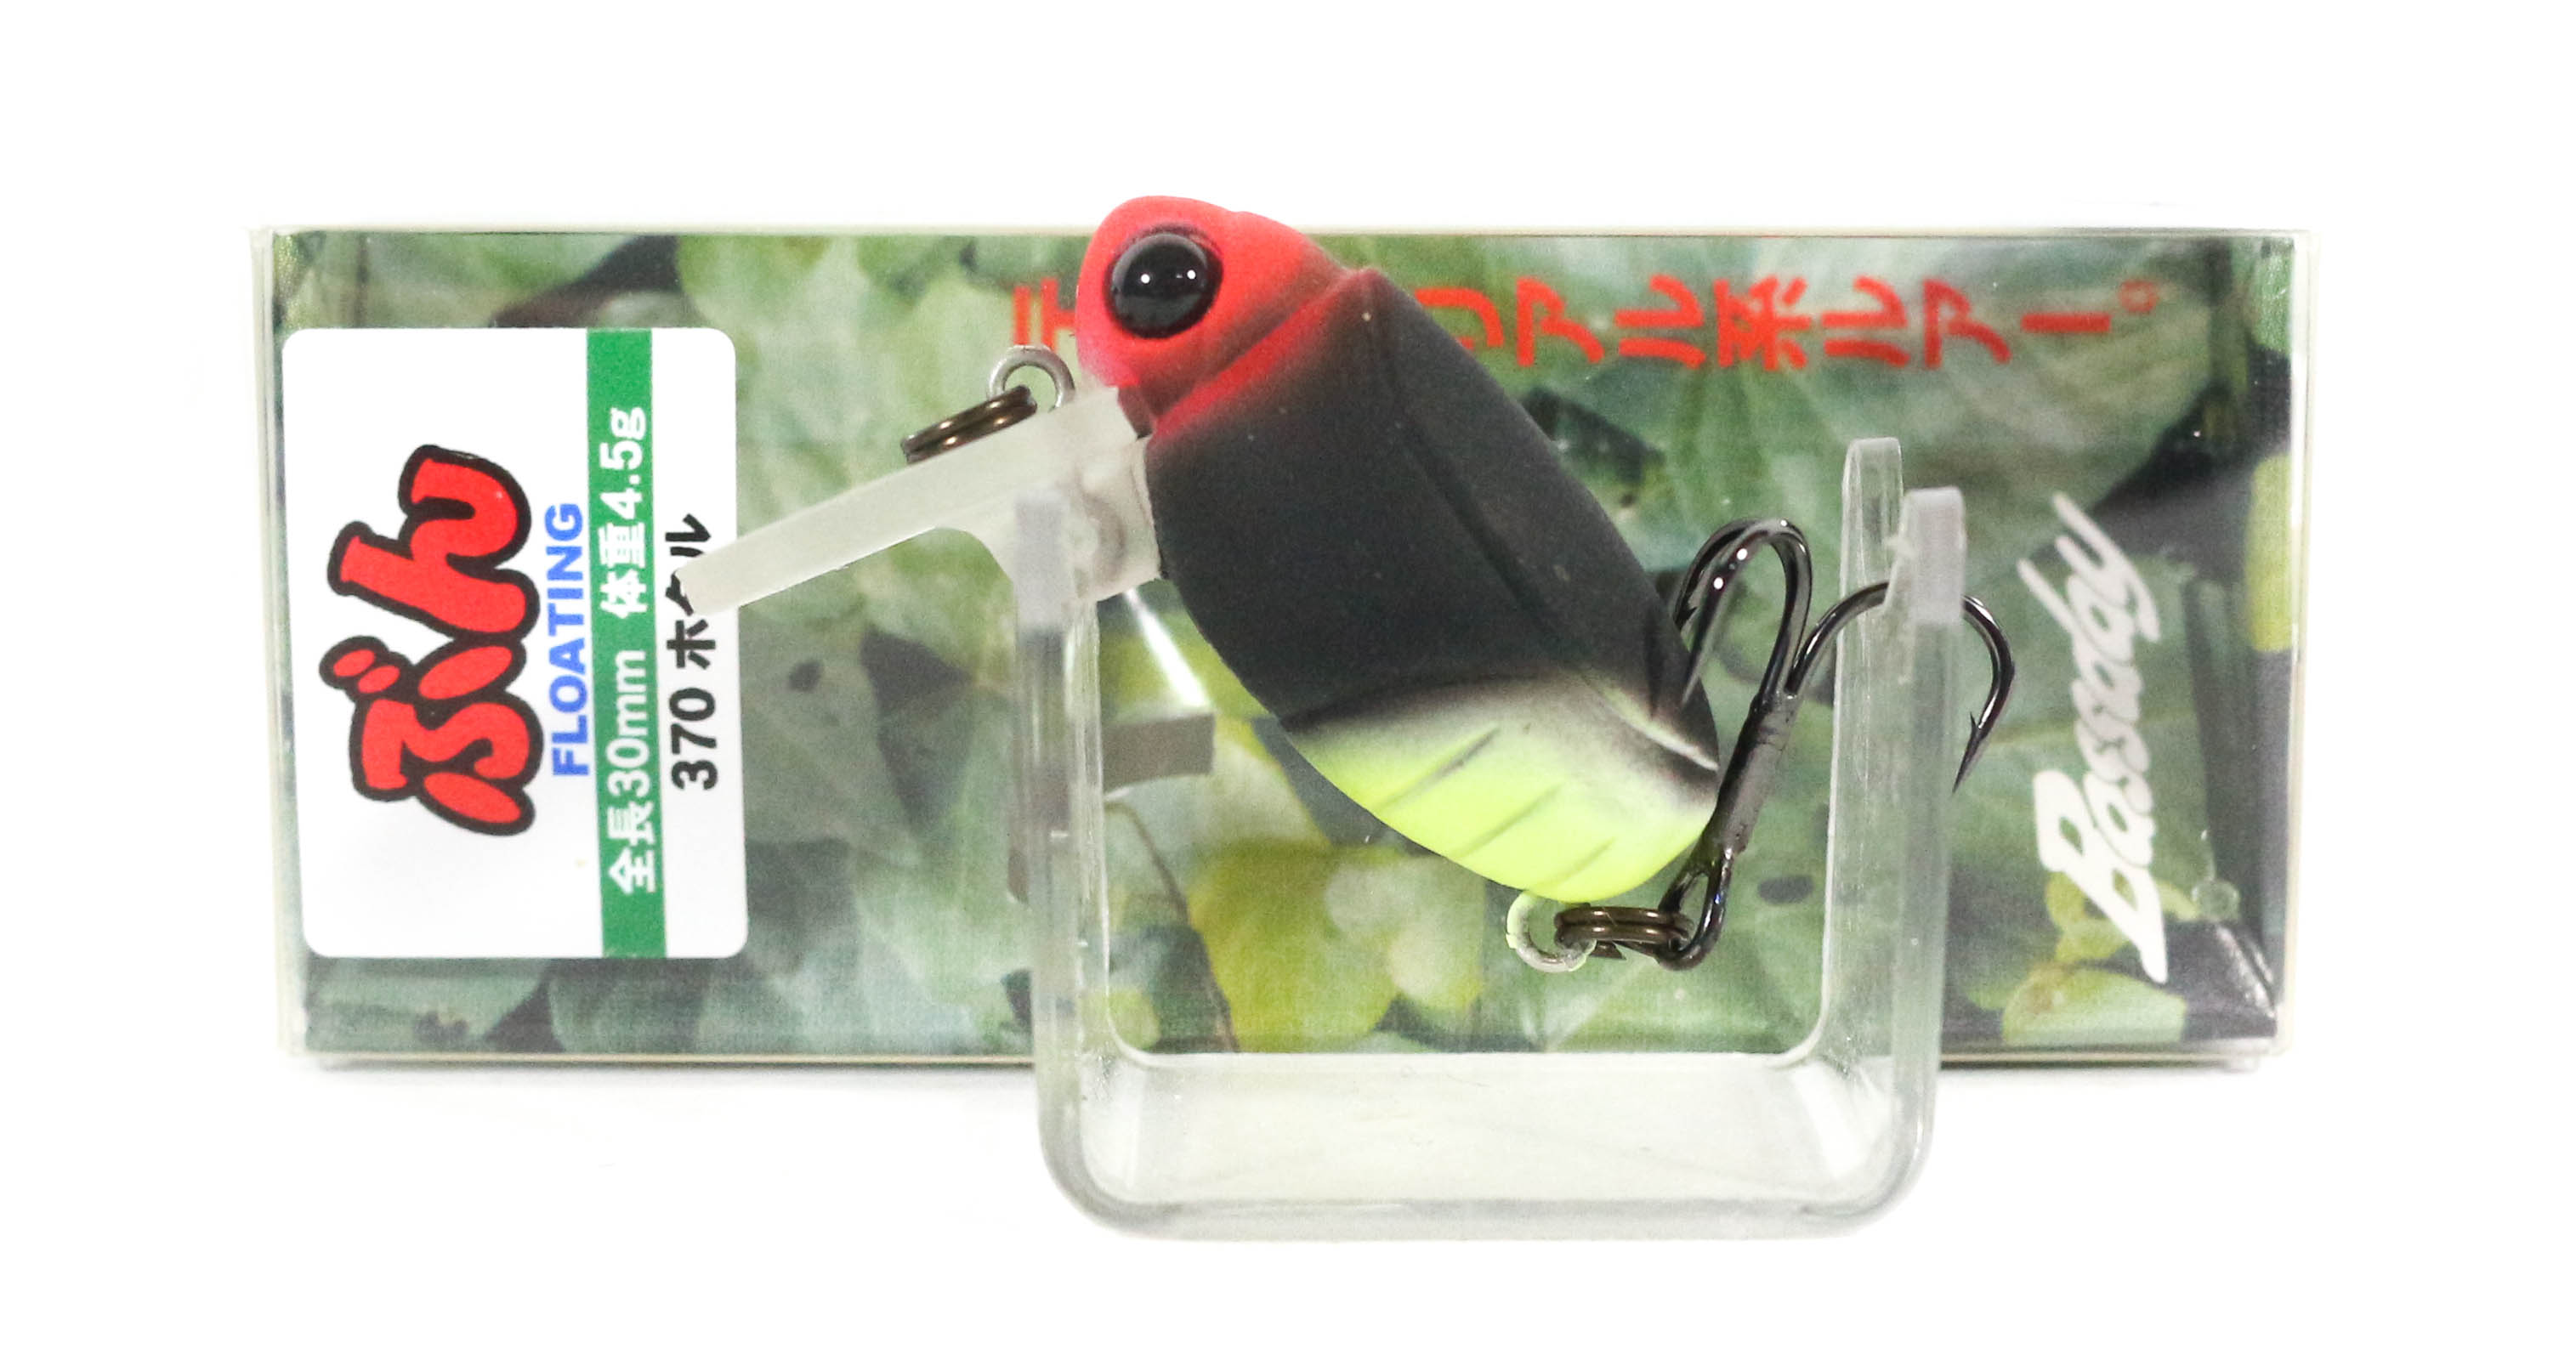 Bassday Beetle Bun 30F Floating Lure 4.5 grams 370 (3440)